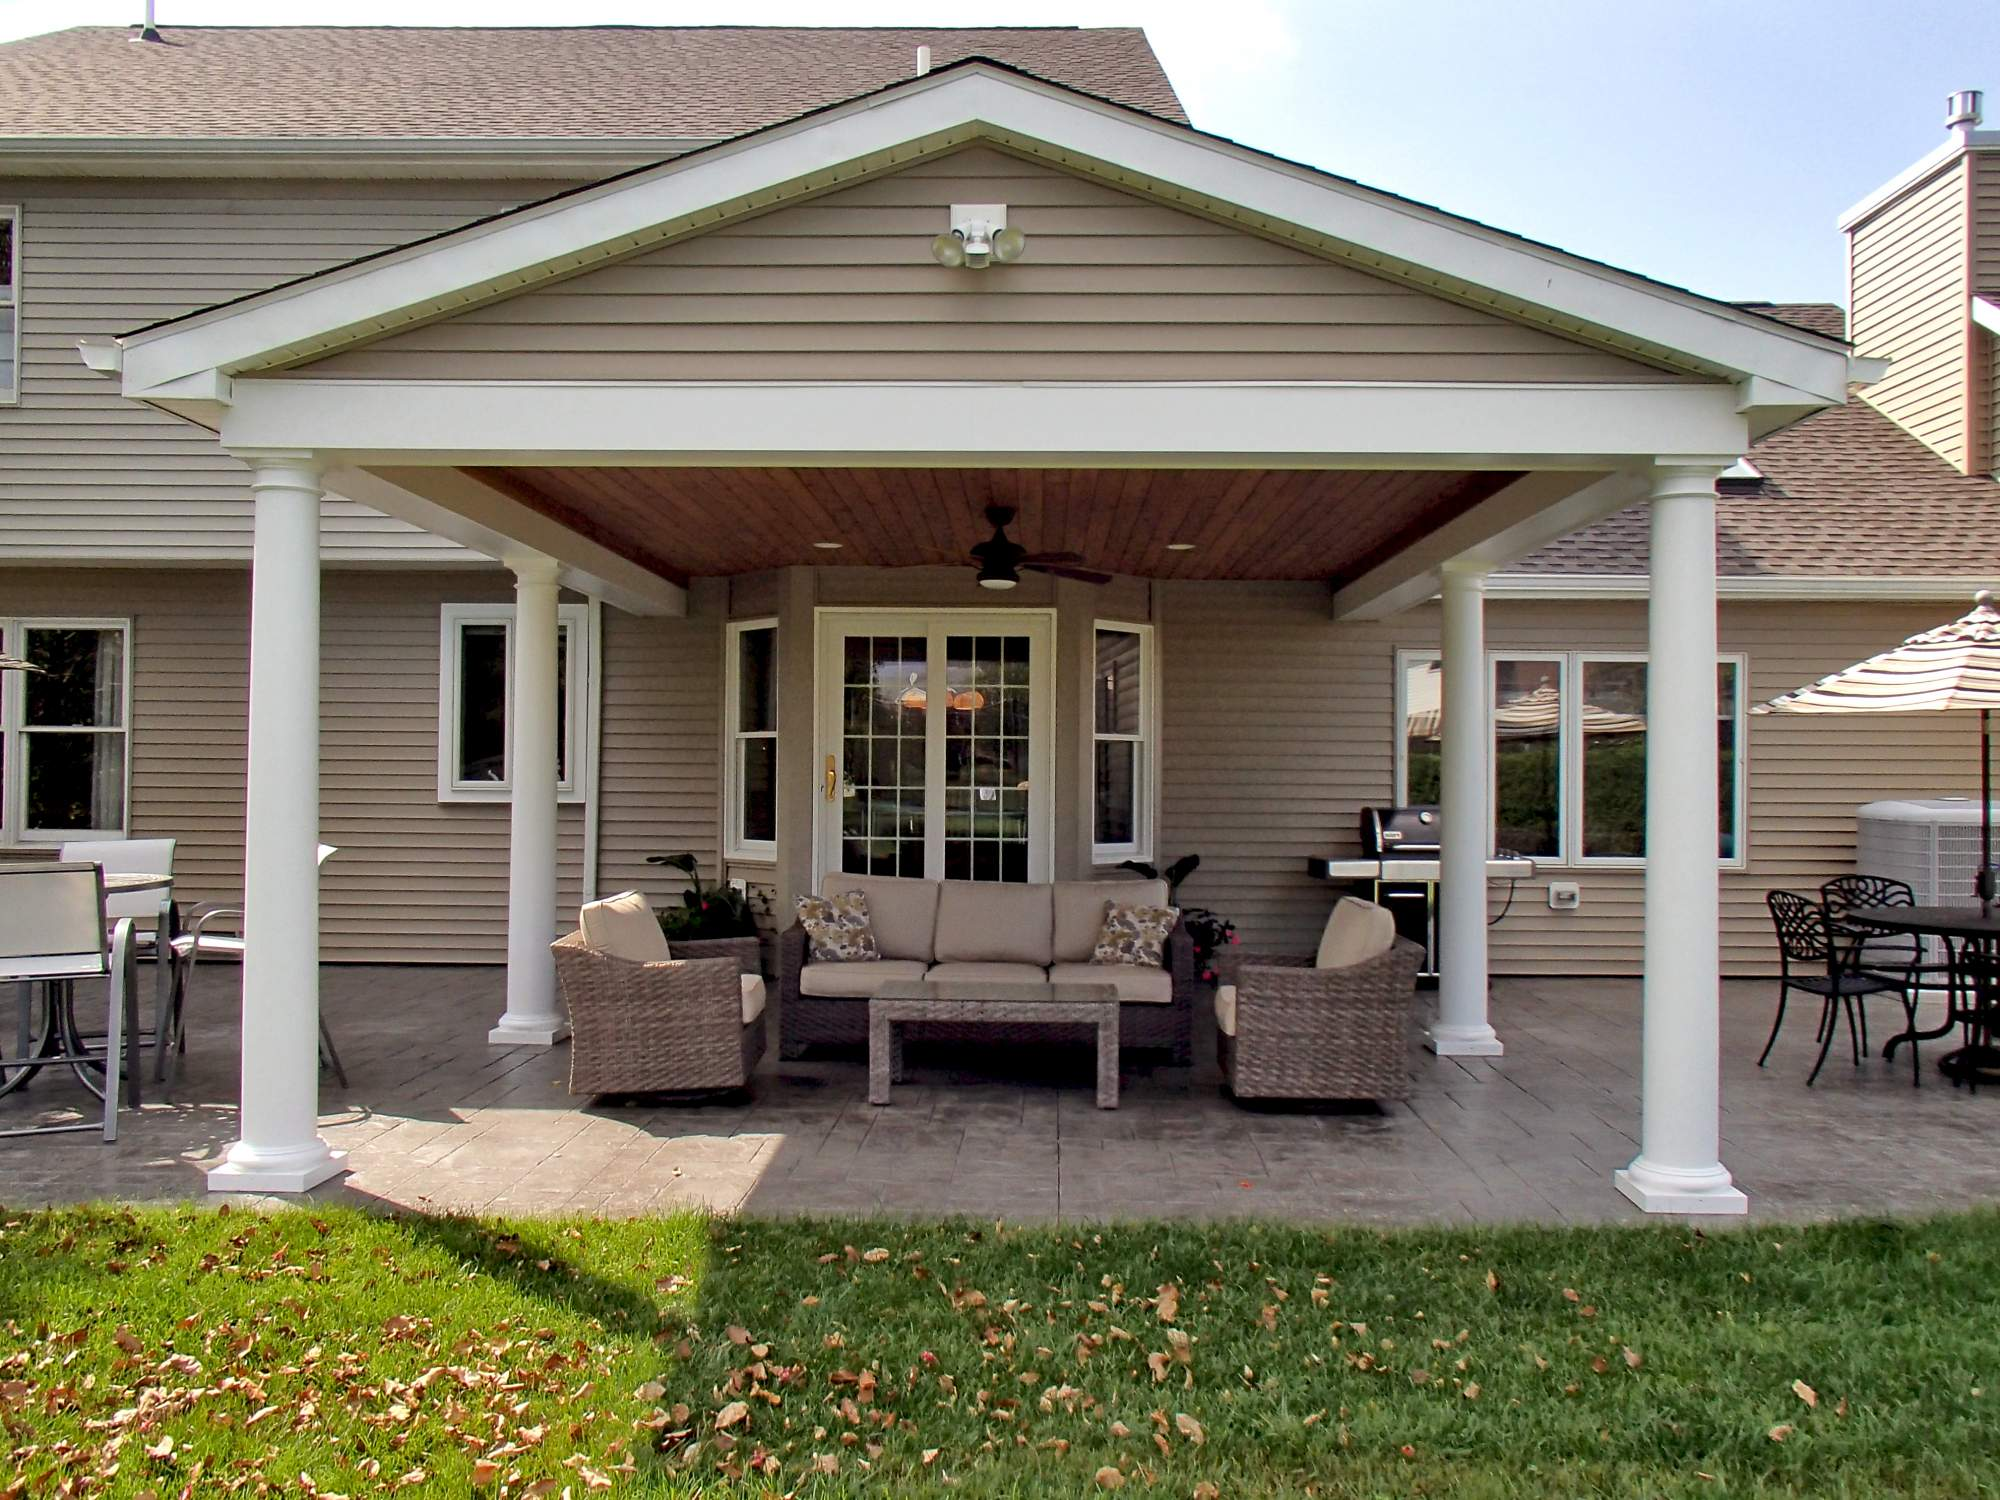 Traditional covered porch patio the dream beyond for Traditional porch